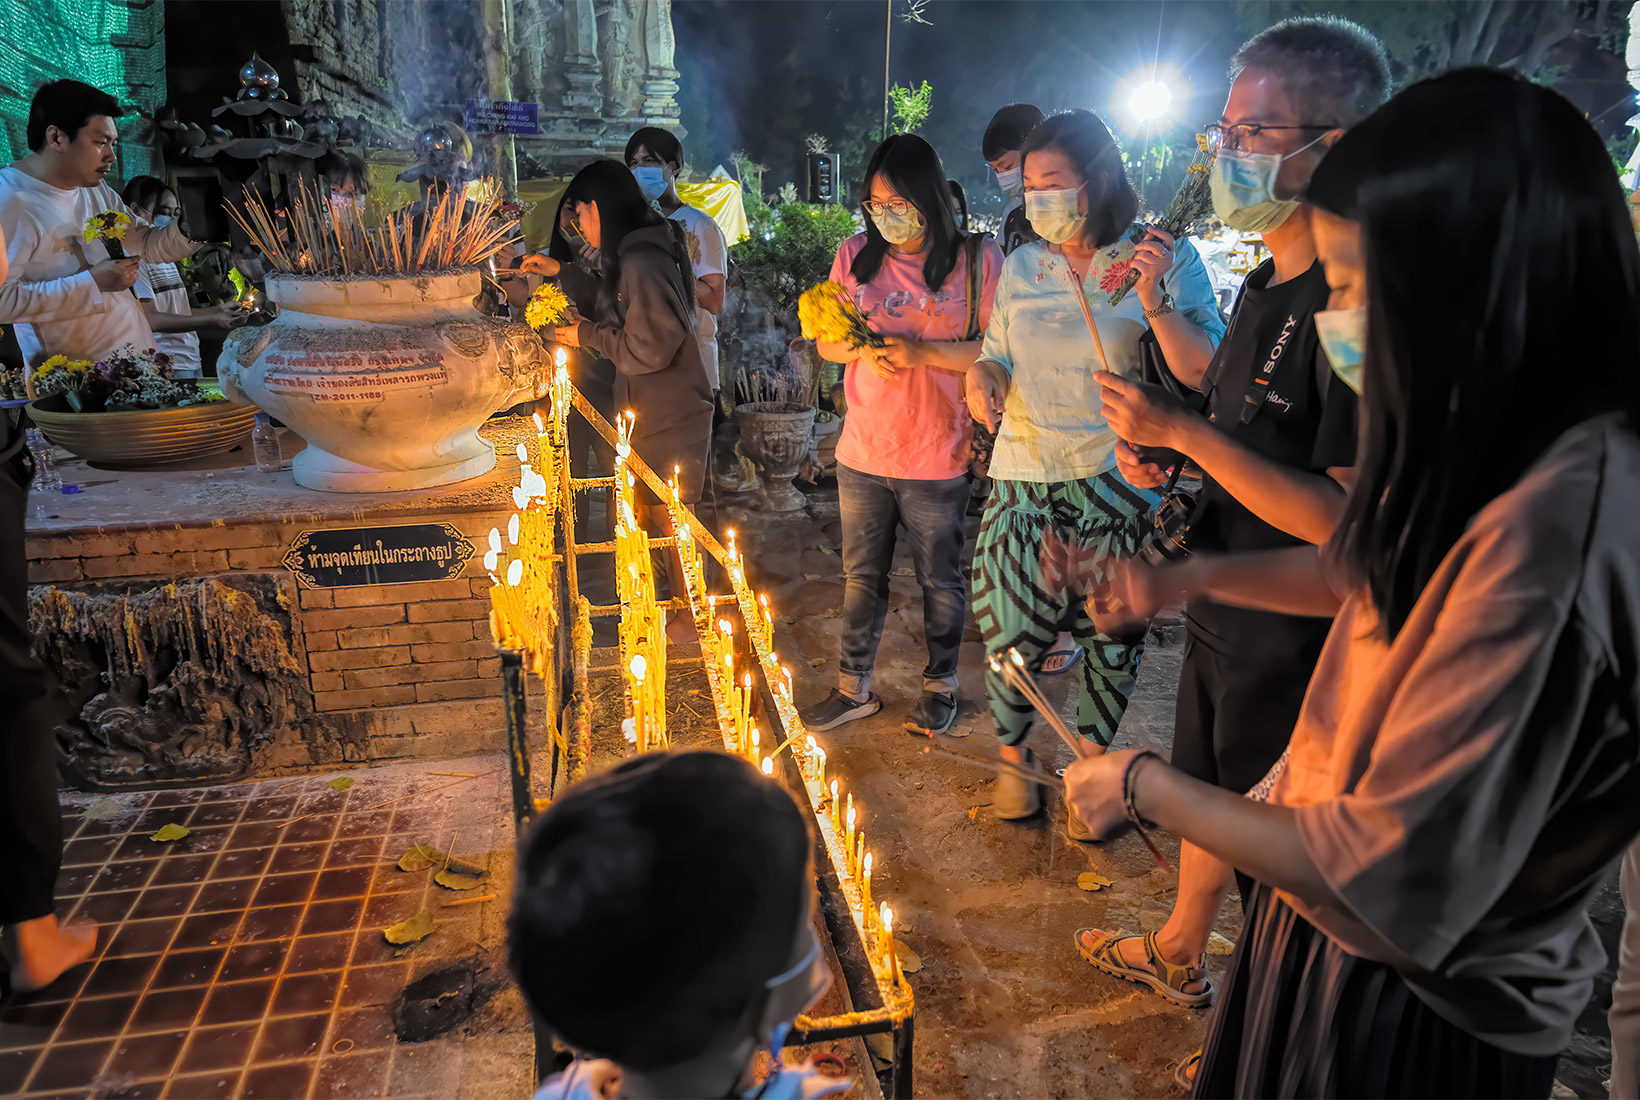 Worshipers light candles at Wat Jed Yod in Chiang Mai, Thailand, to pay respect to Buddha during Makha Bucha Day